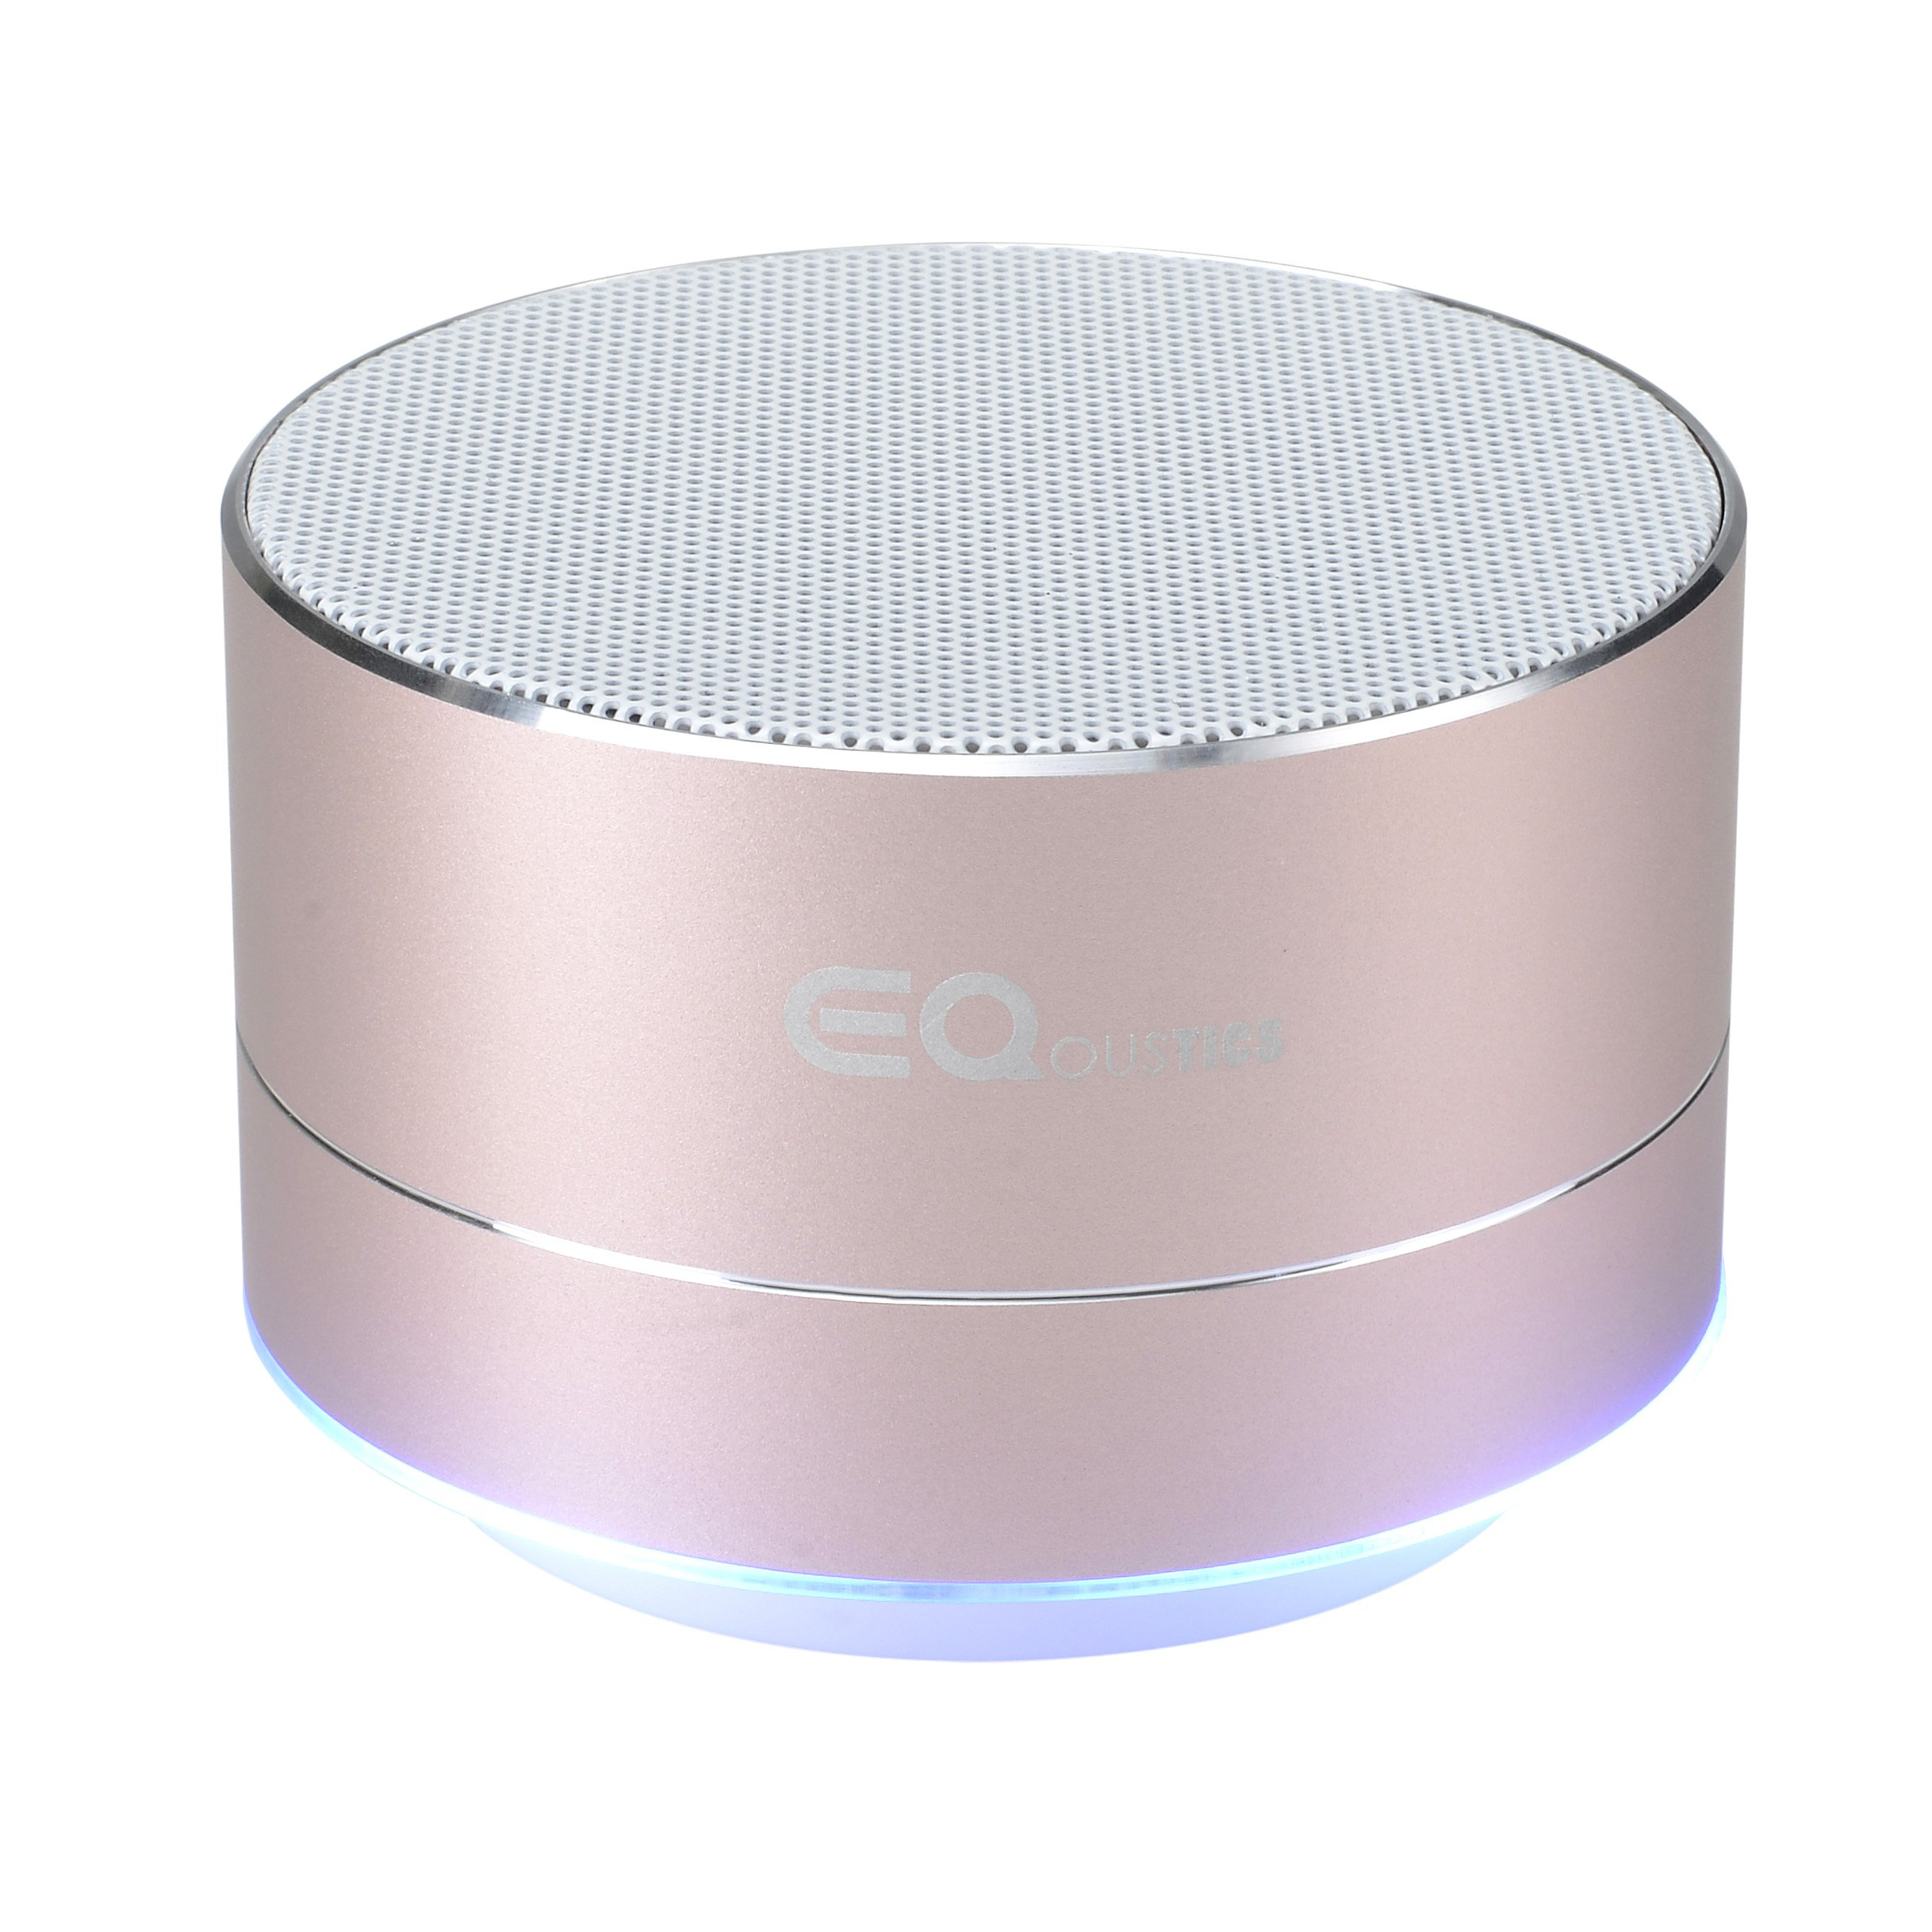 EQoustics Bluetooth speaker - with enhanced battery for...